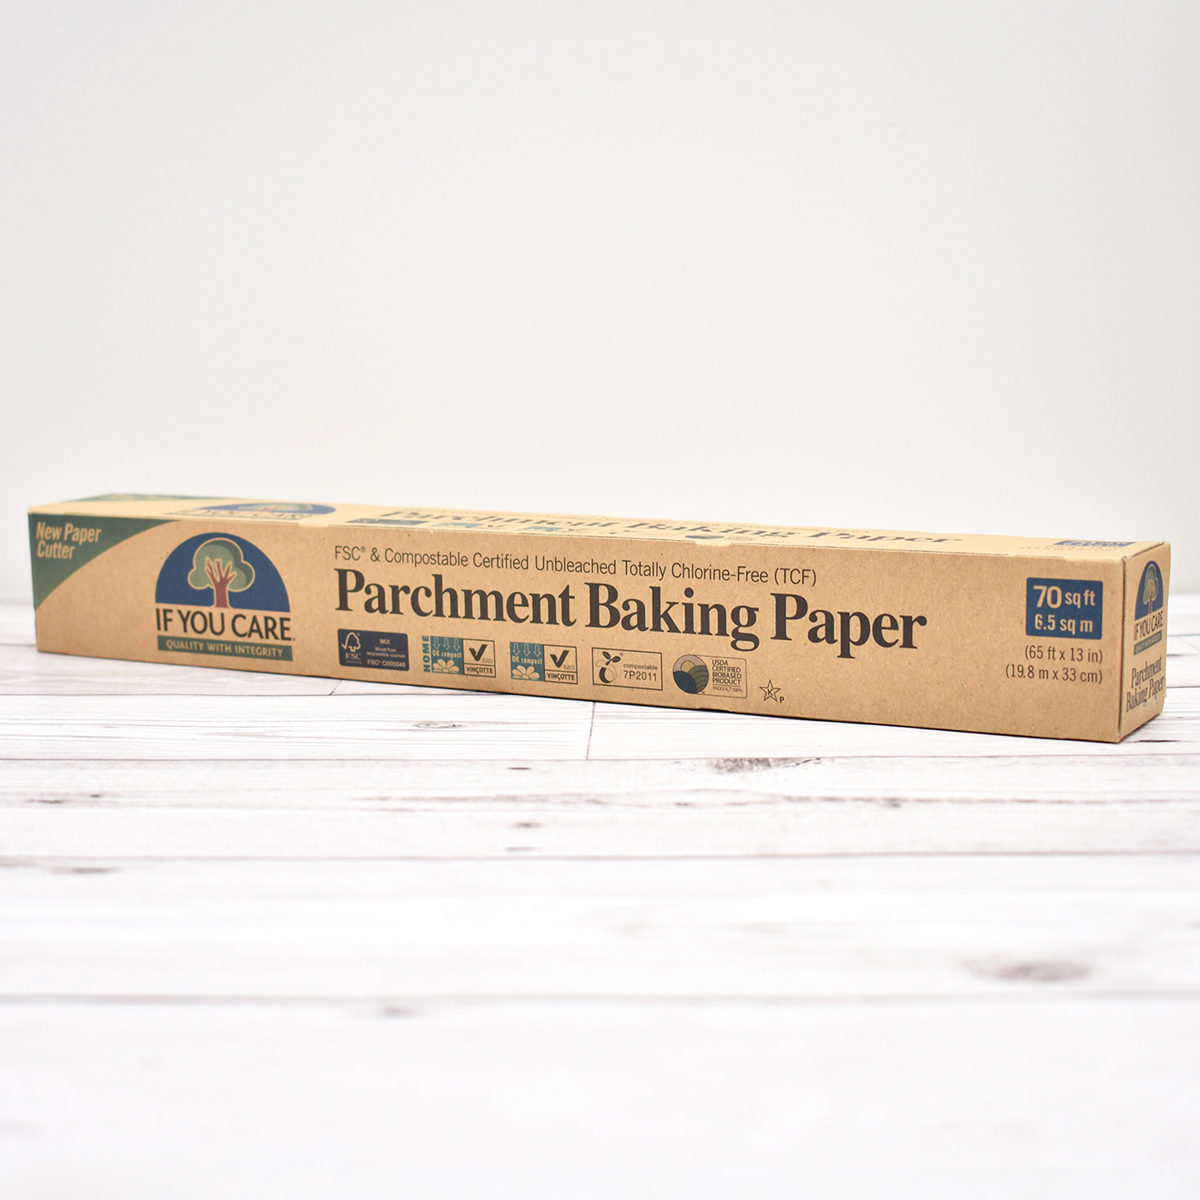 Parchment Paper | Unbleached | If You Care